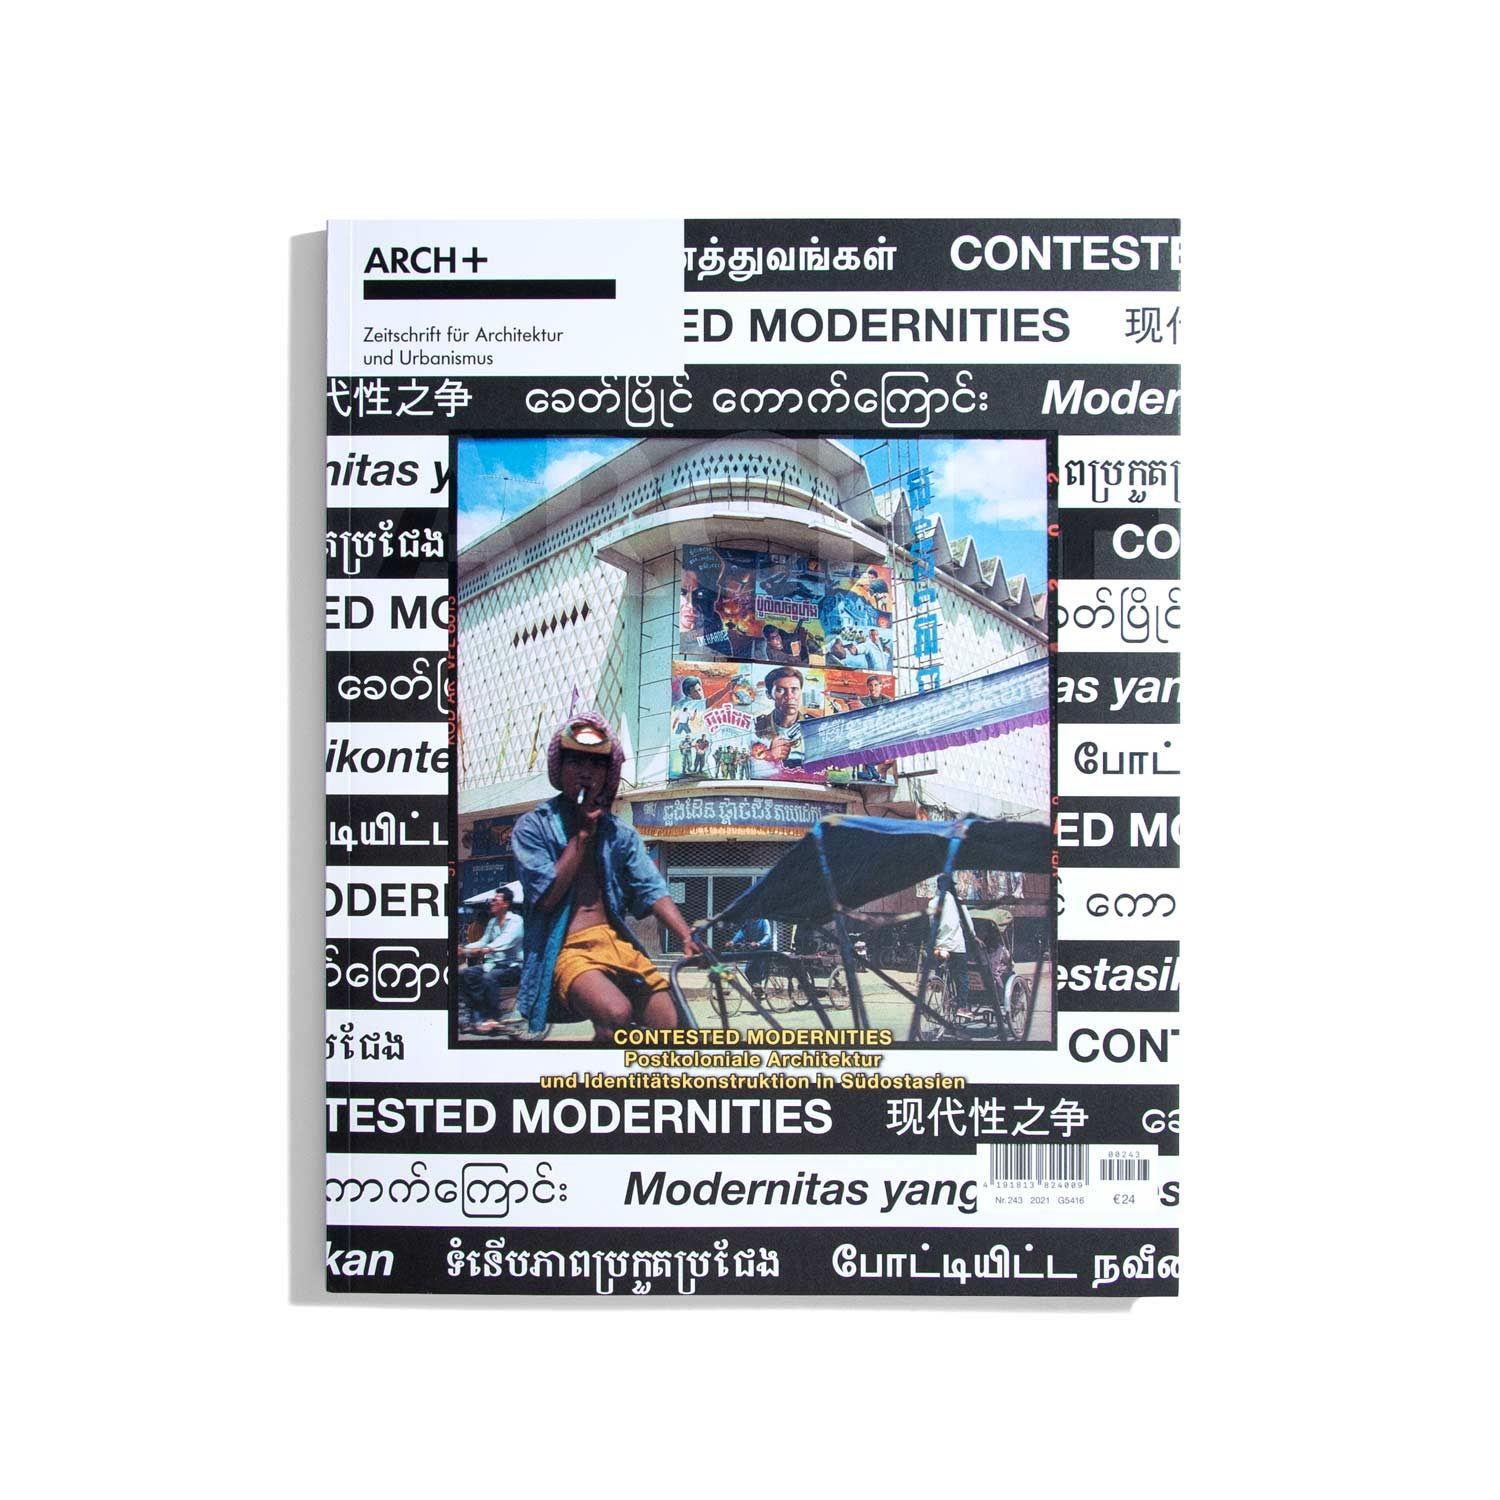 Arch+ #243 2021 - Contested Modernities